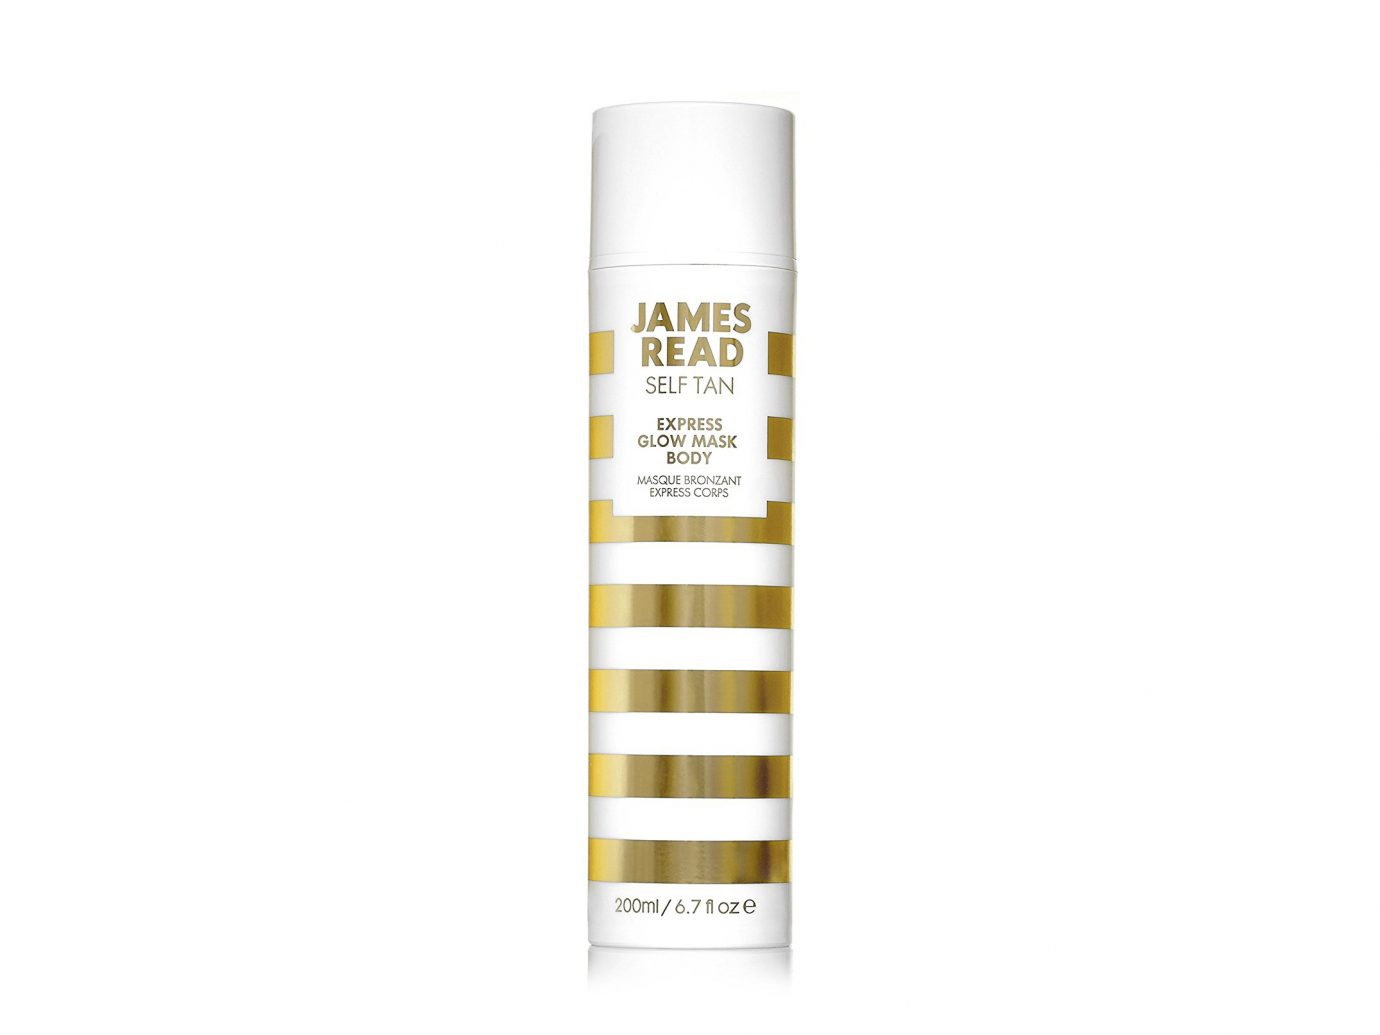 Summer Glow product James Read Express Glow Mask for Face